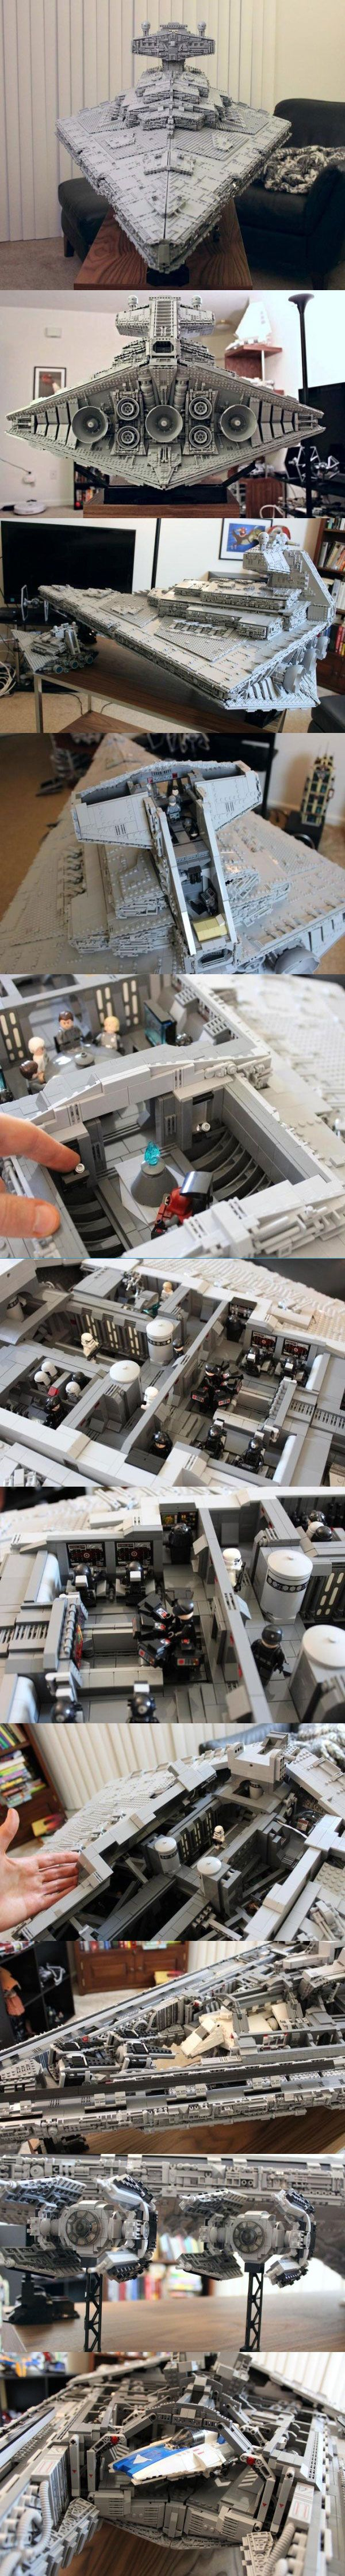 Check it out1 Custom LEGO Star Destroyer Has Three Interior Levels and Even Holds TIE Interceptors https://imgur.com/gallery/snxk3